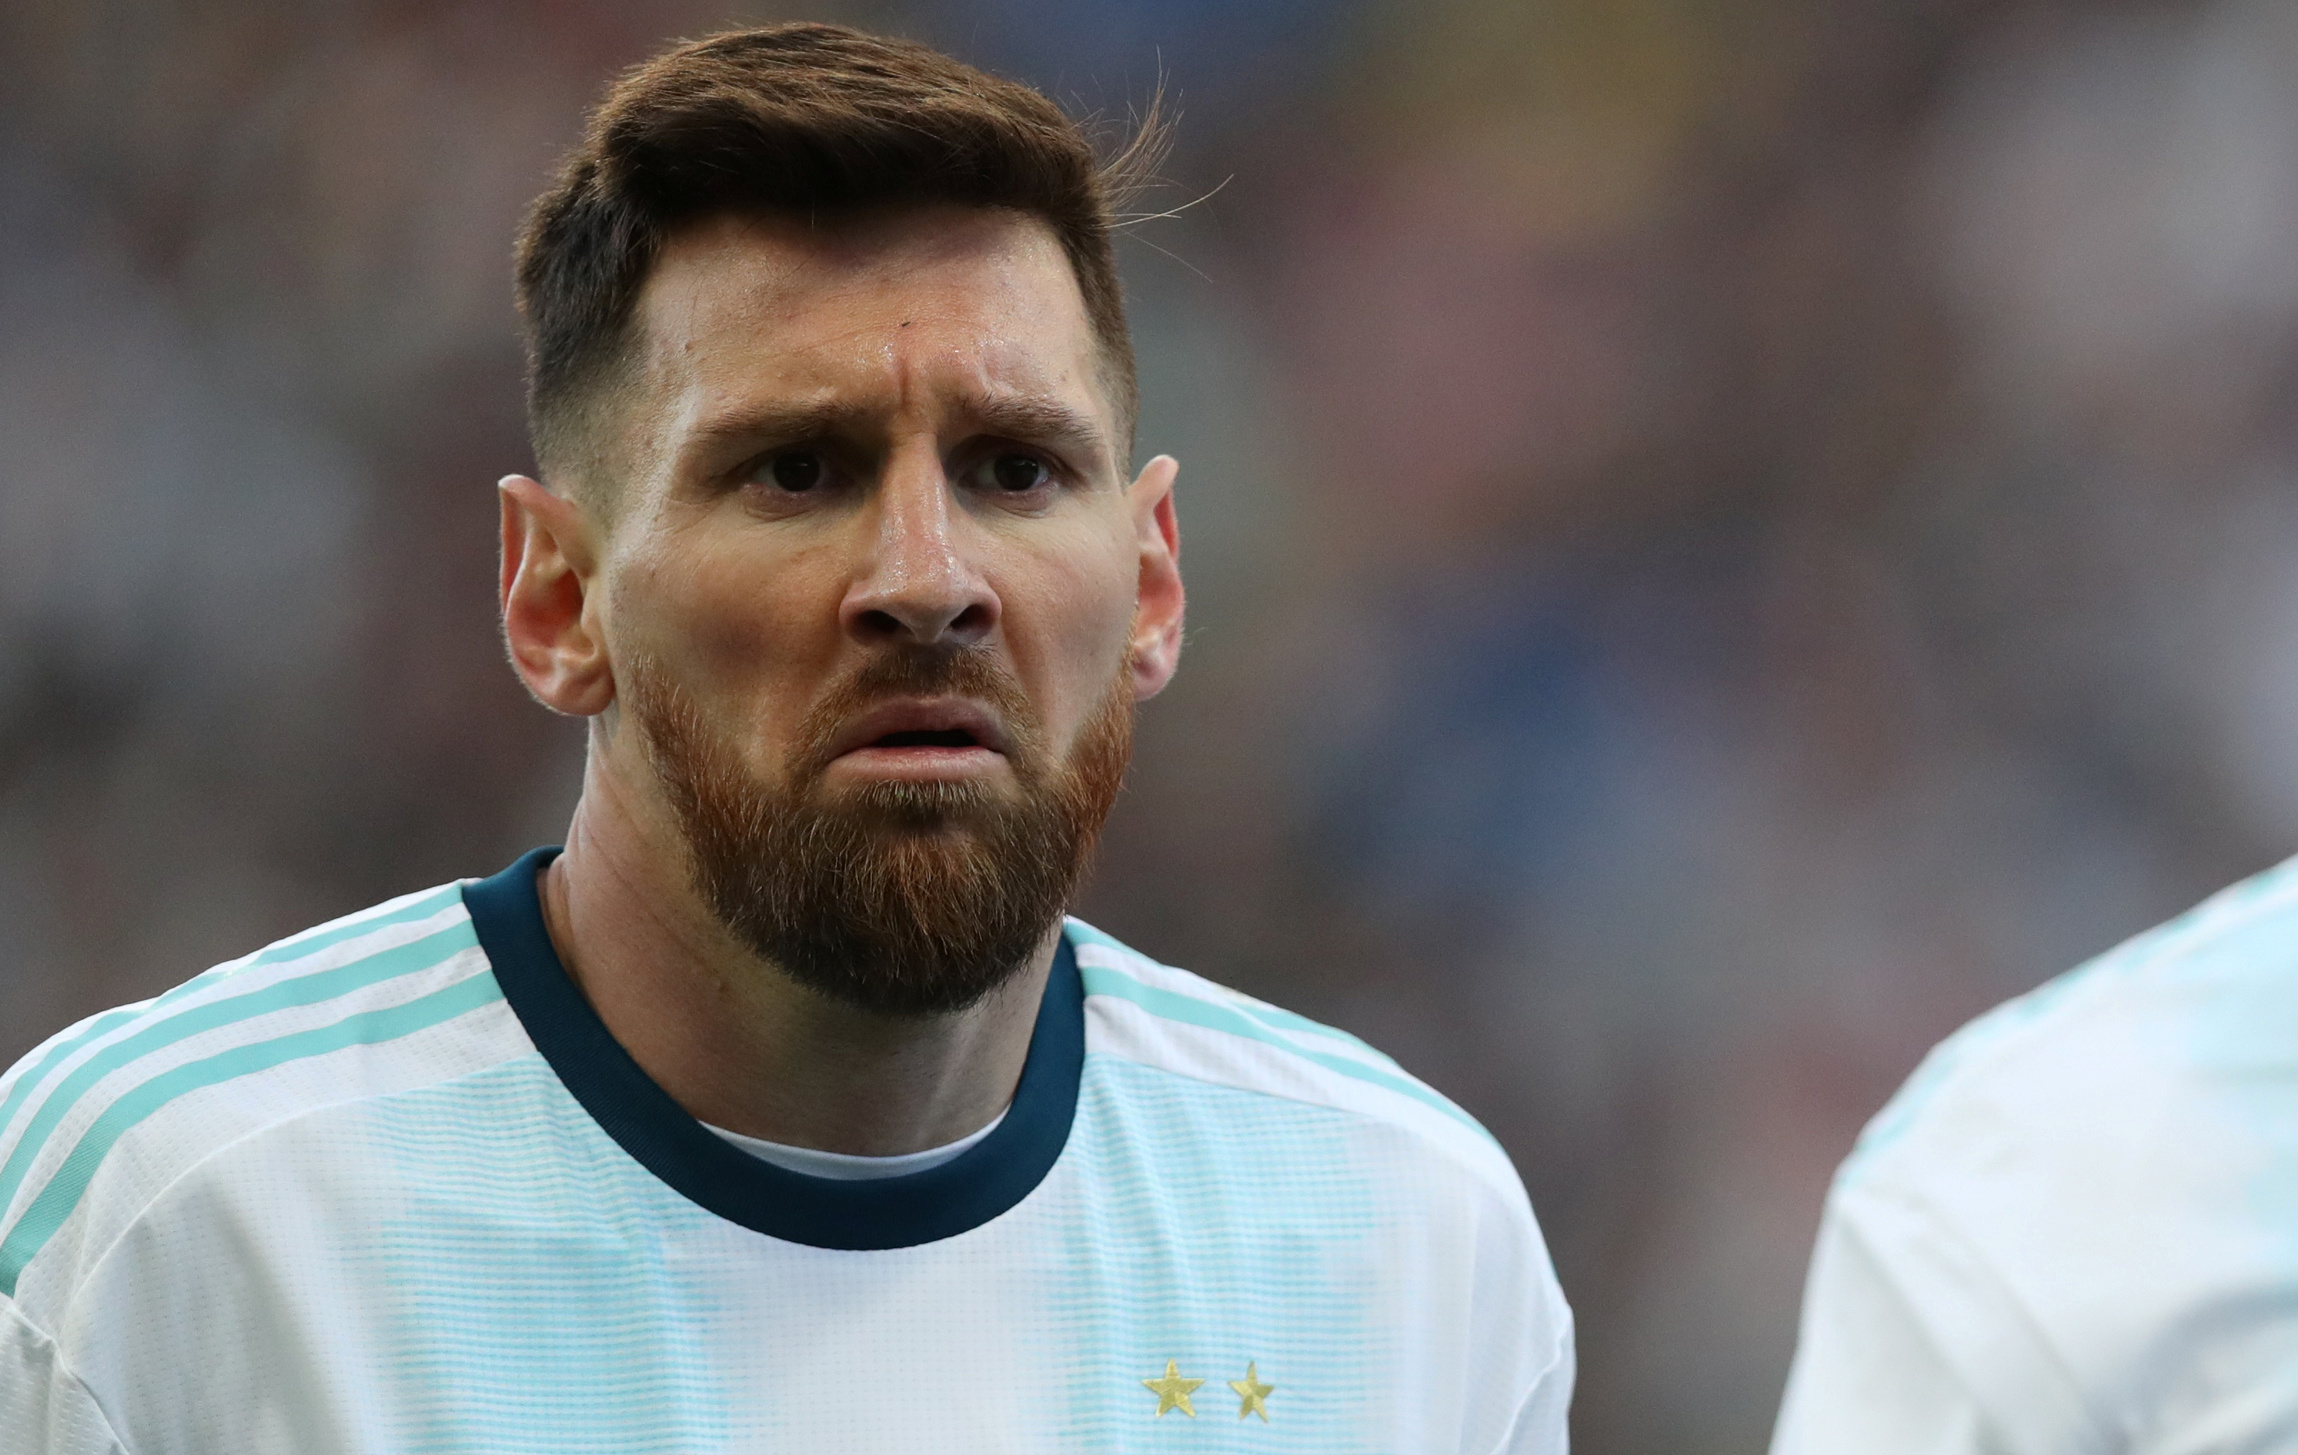 Football - Copa America - Expulsé face au Chili, Messi accuse la Conmebol de corruption